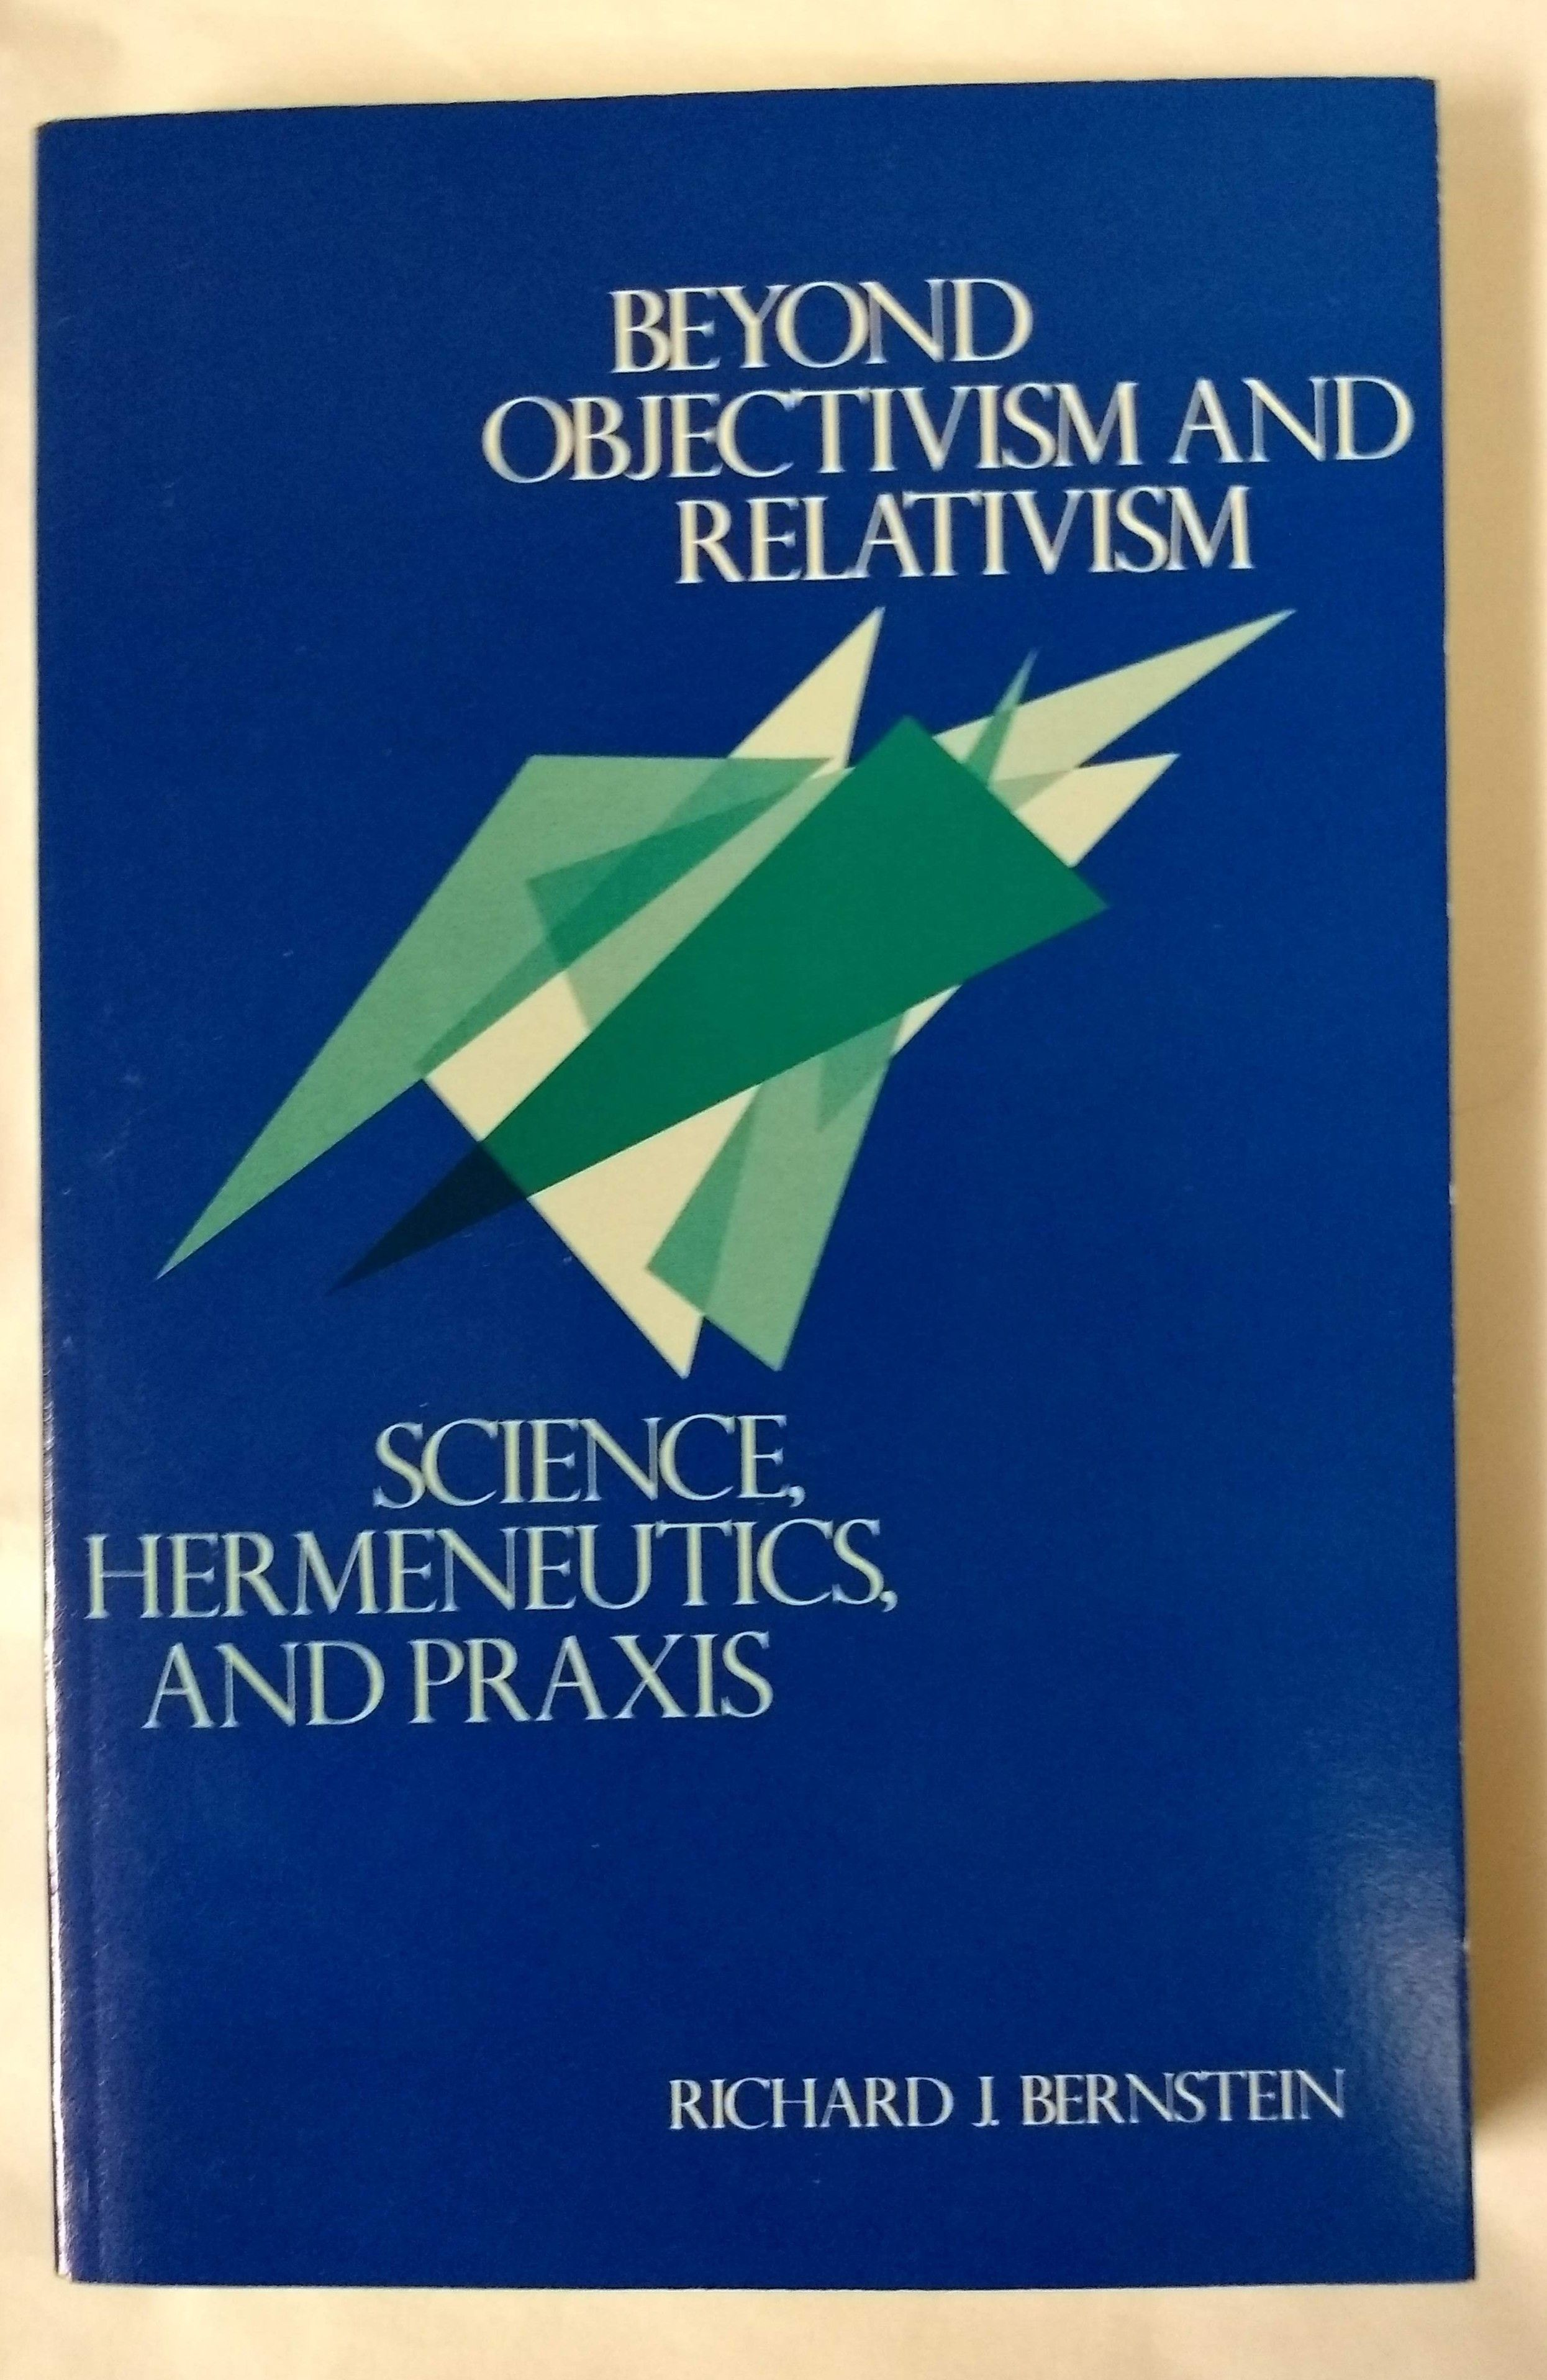 Beyond Objectivism and Relativism: Science, Hermeneutics, and Praxis, Bernstein, Richard J.